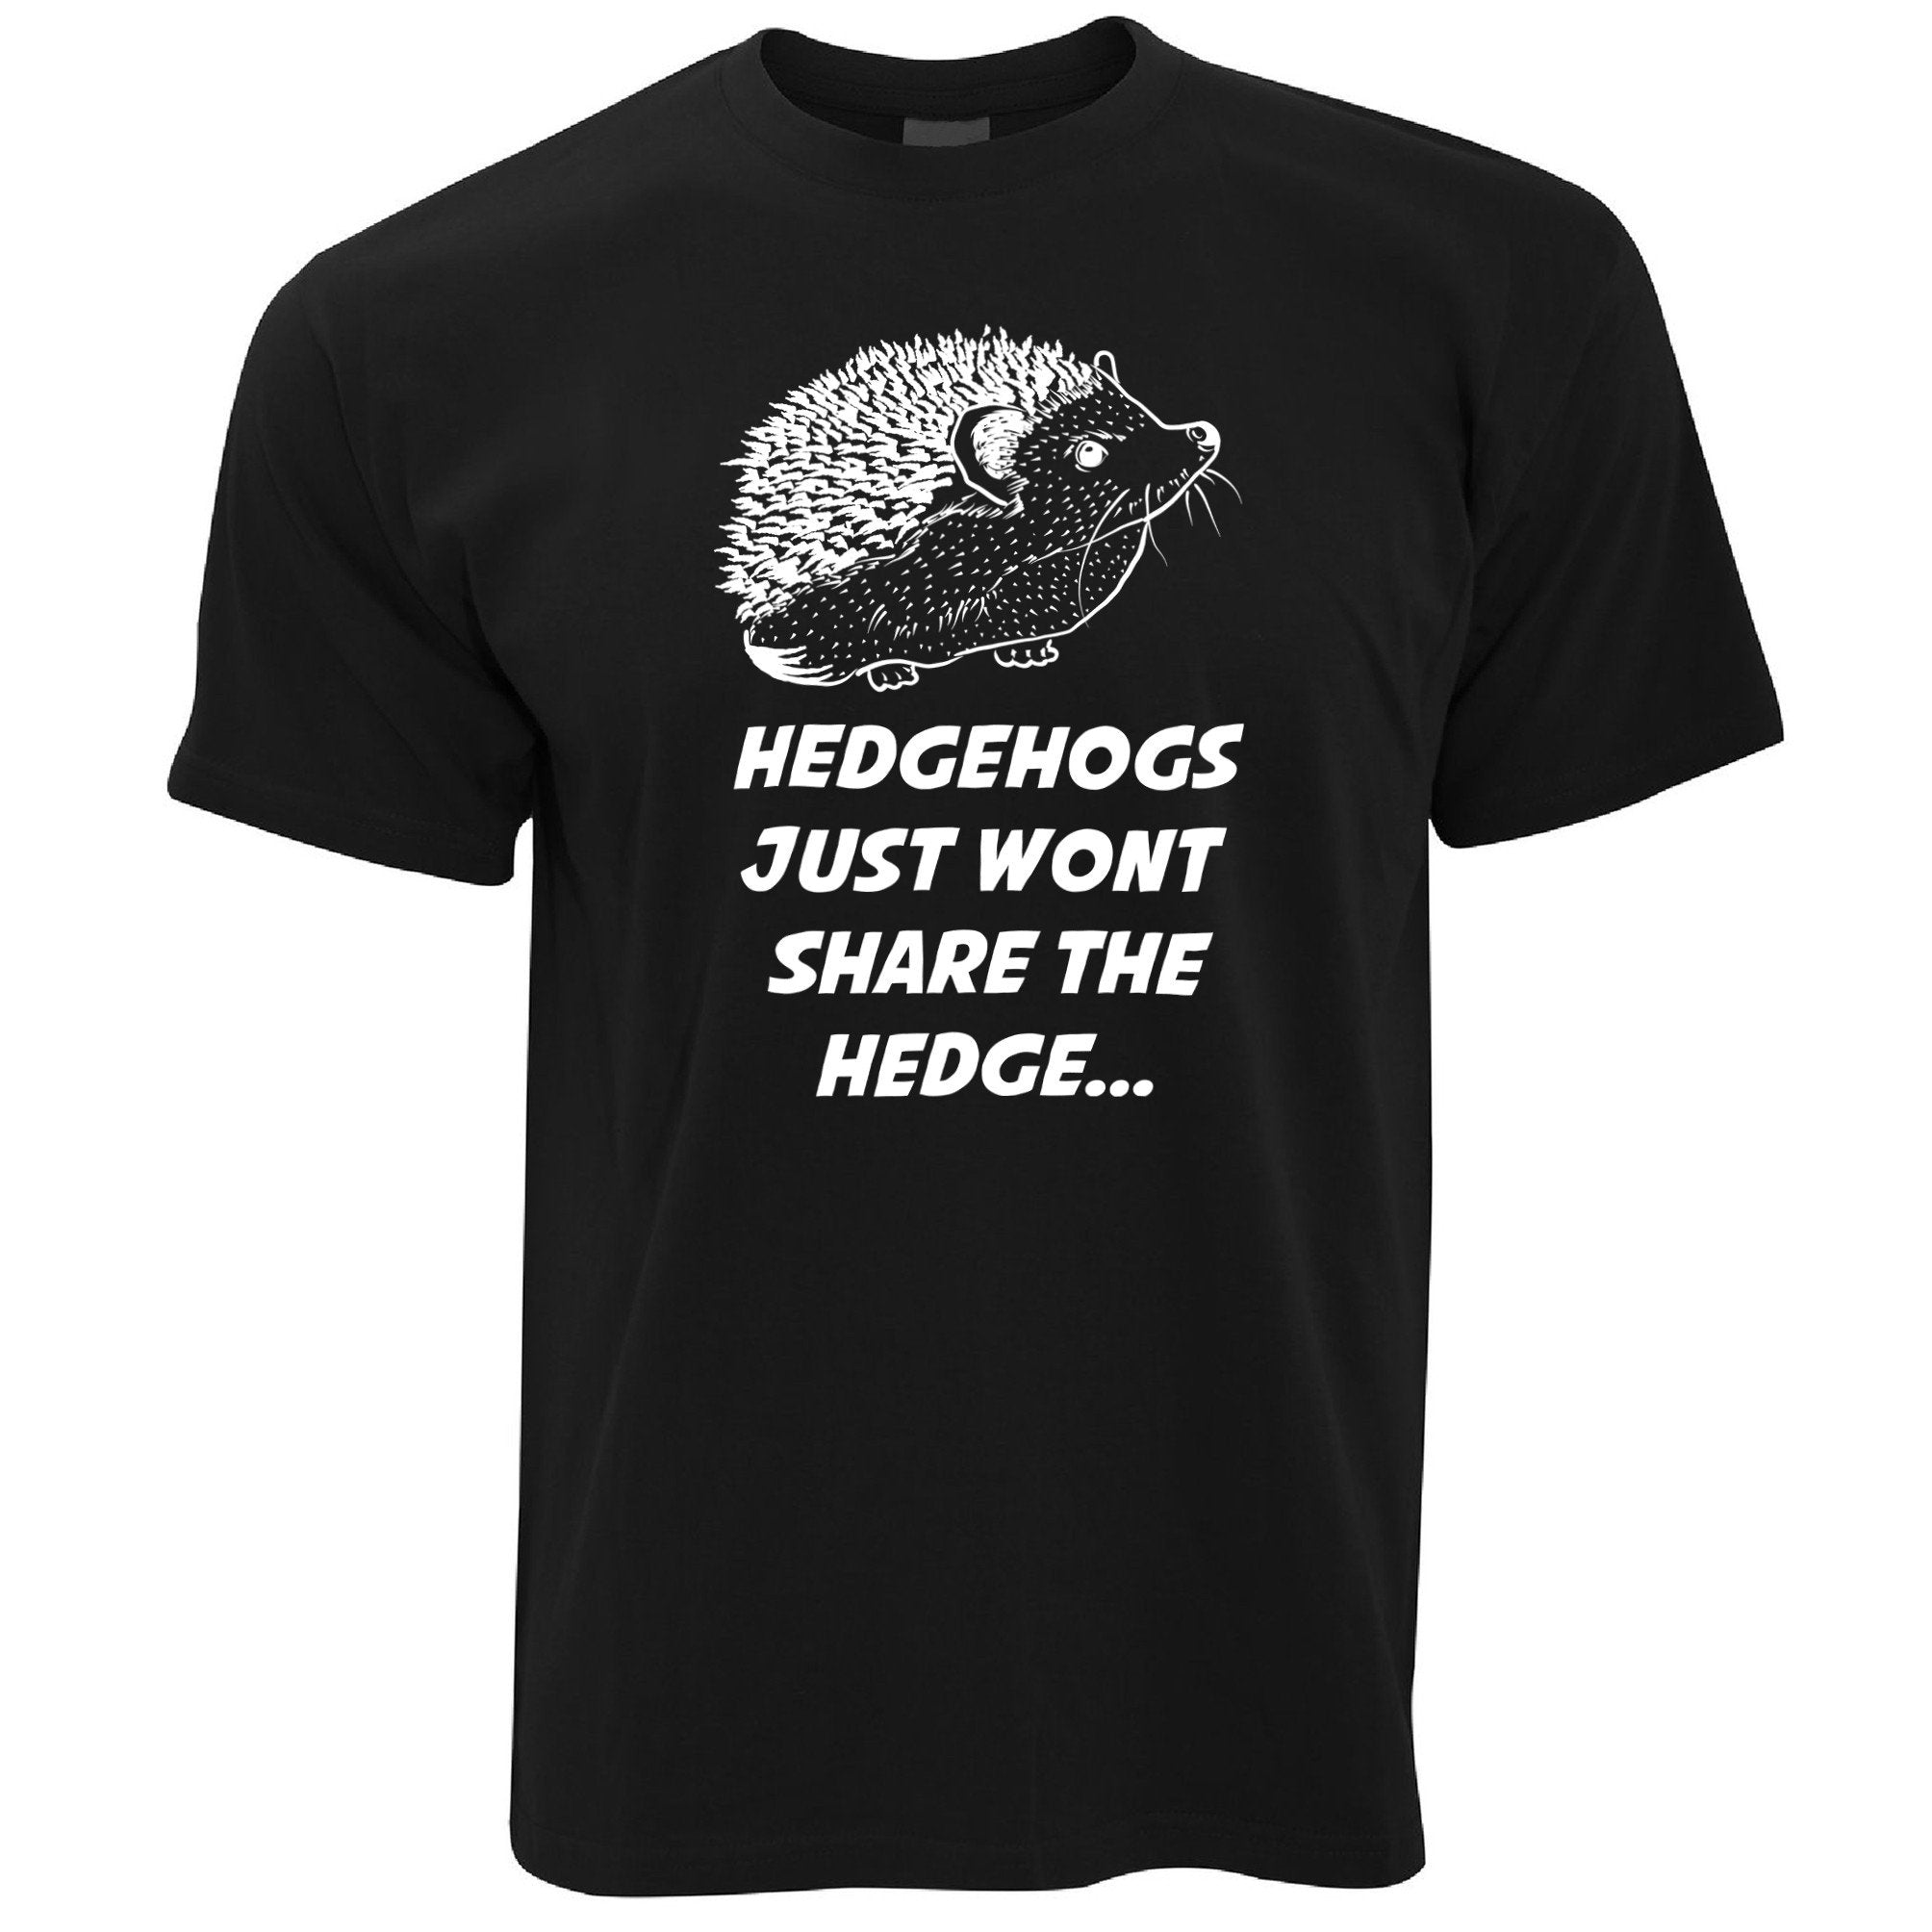 Joke Pun T Shirt Hedgehogs Just Won't Share The Hedge